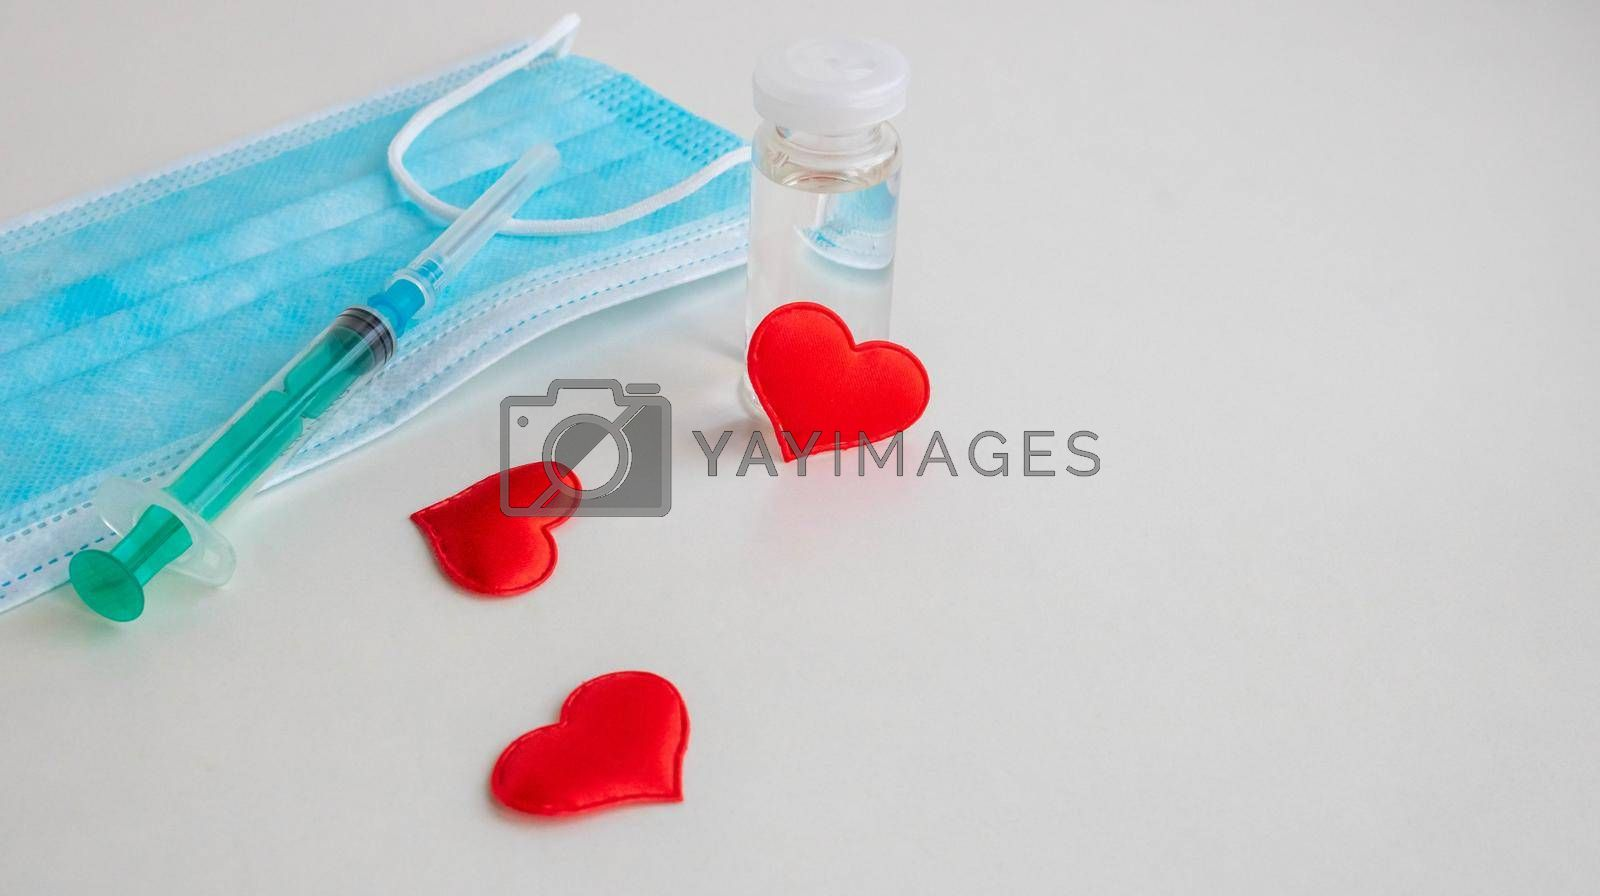 On a white background are a mask, a syringe, a bottle of vaccine and three small red hearts. The concept of medicine and health care.